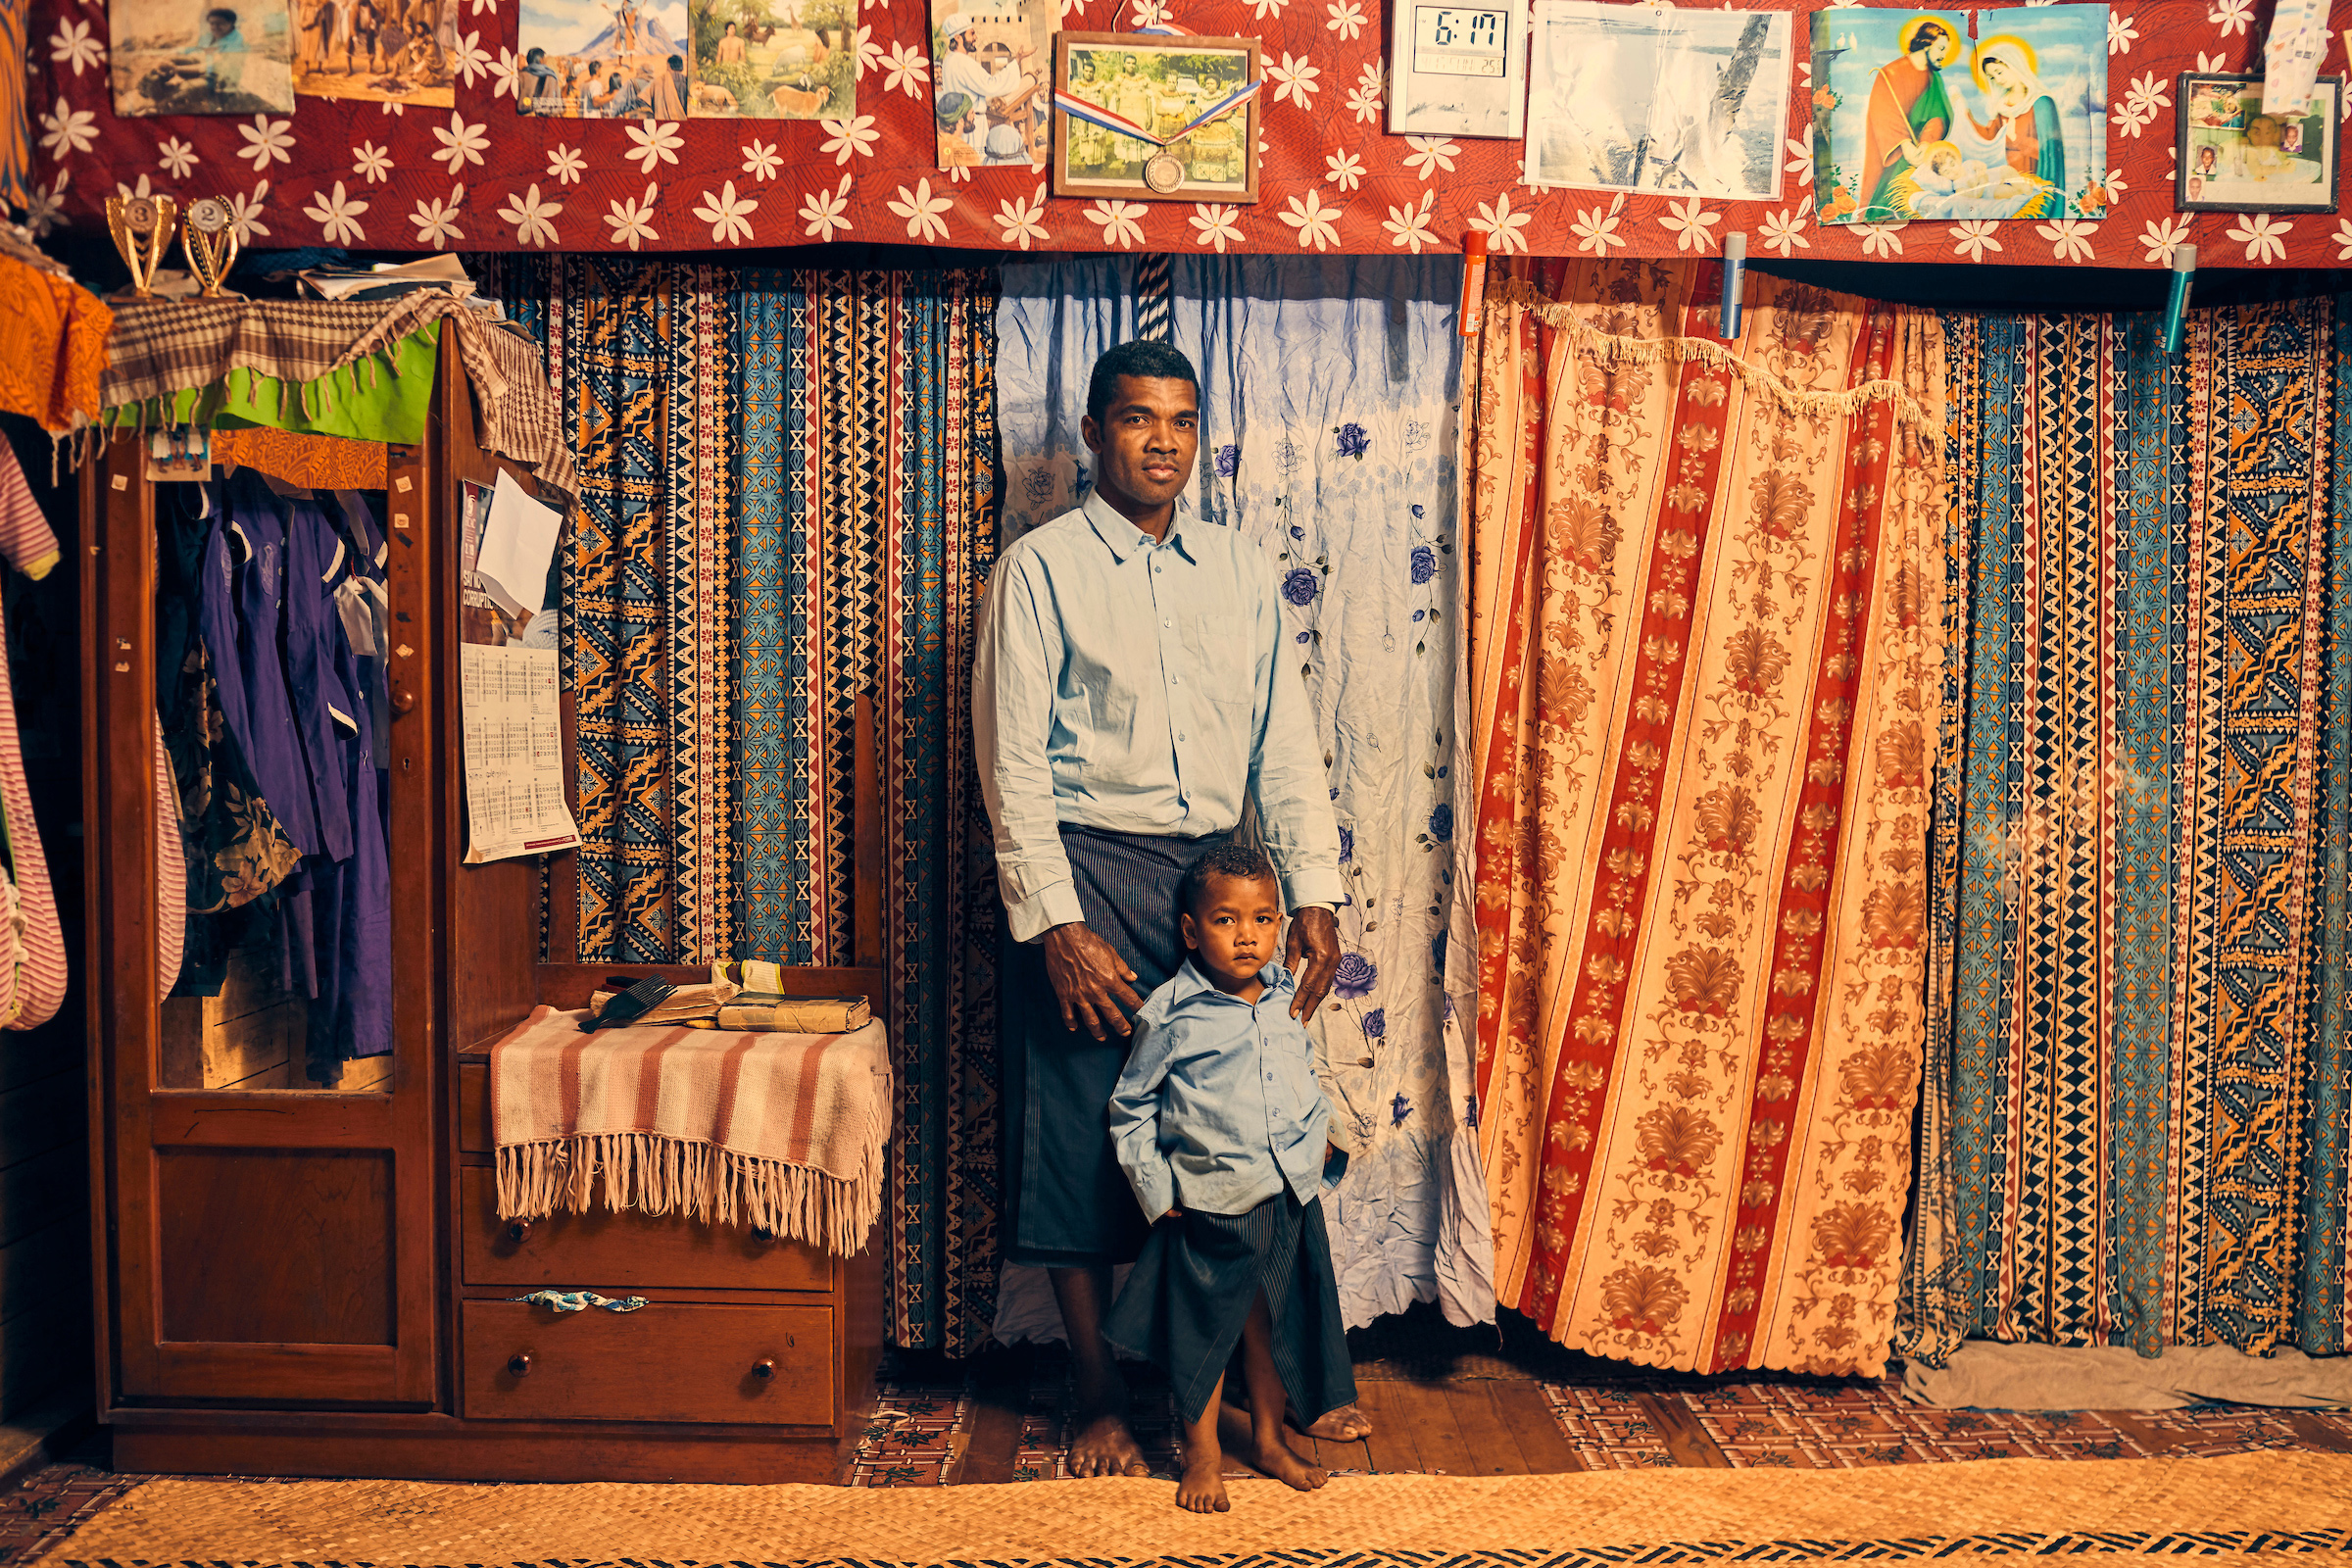 Apisai Logaivau and his family were relocated from their village due to the effects of climate change. Vunidogoloa was the first place in Fiji to relocate, but it won't be the last.